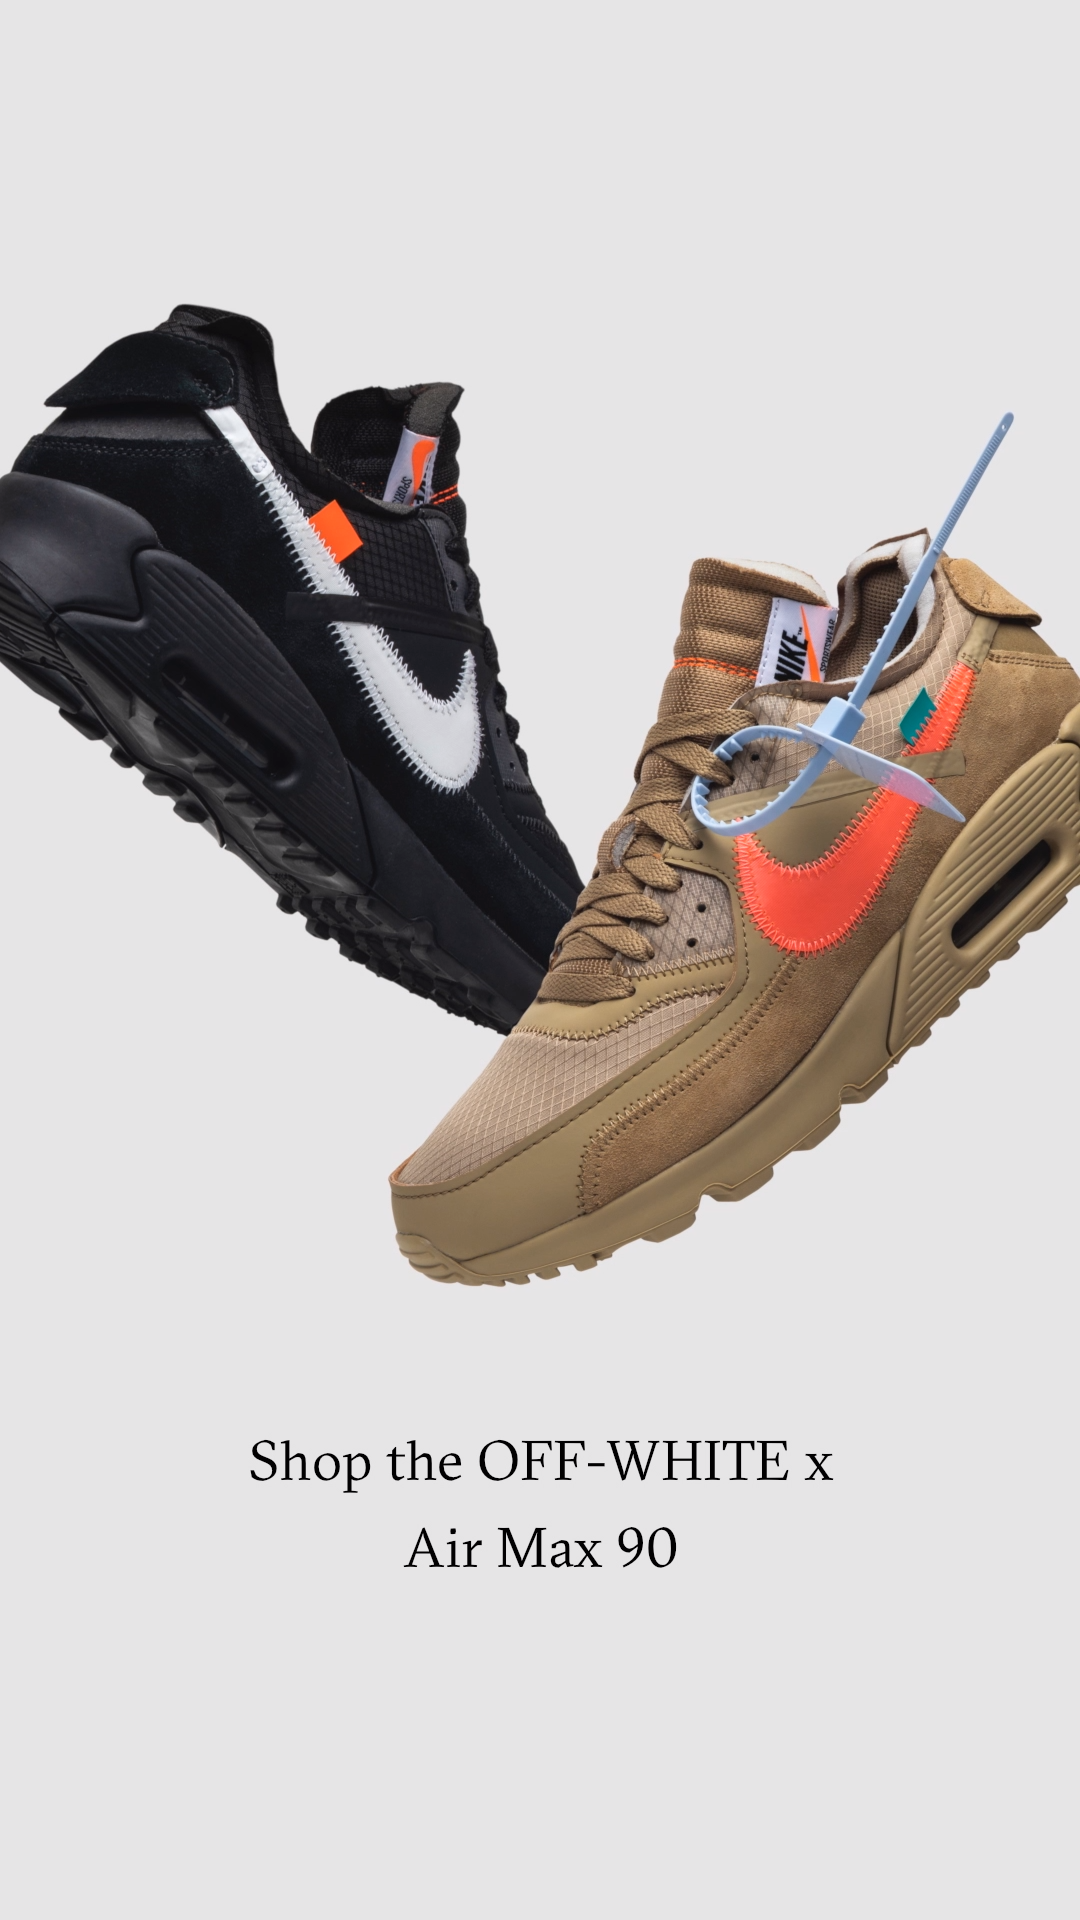 8a637540f11bd0 GOAT is the safest way to buy and sell sneakers. We guarantee authenticity  on every sneaker purchase or your money back. Shop the largest selection of  Yeezy ...